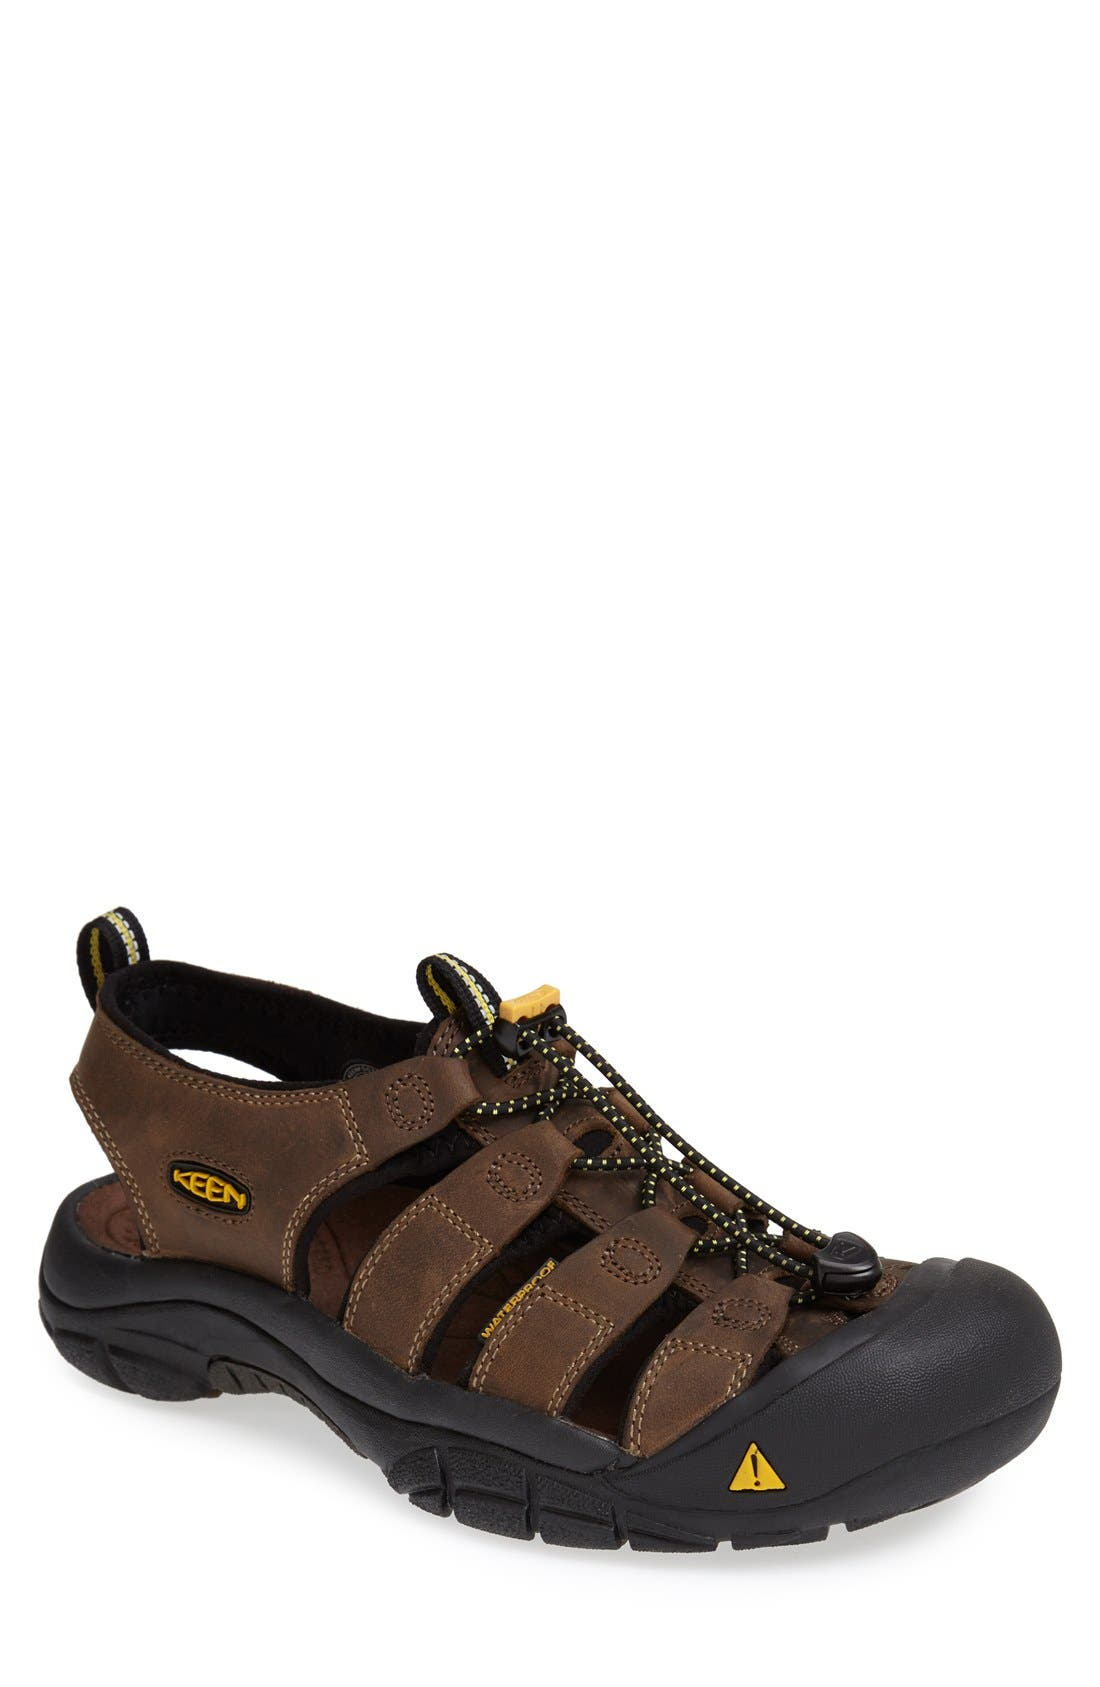 Keen 'Newport' Sandal (Men)